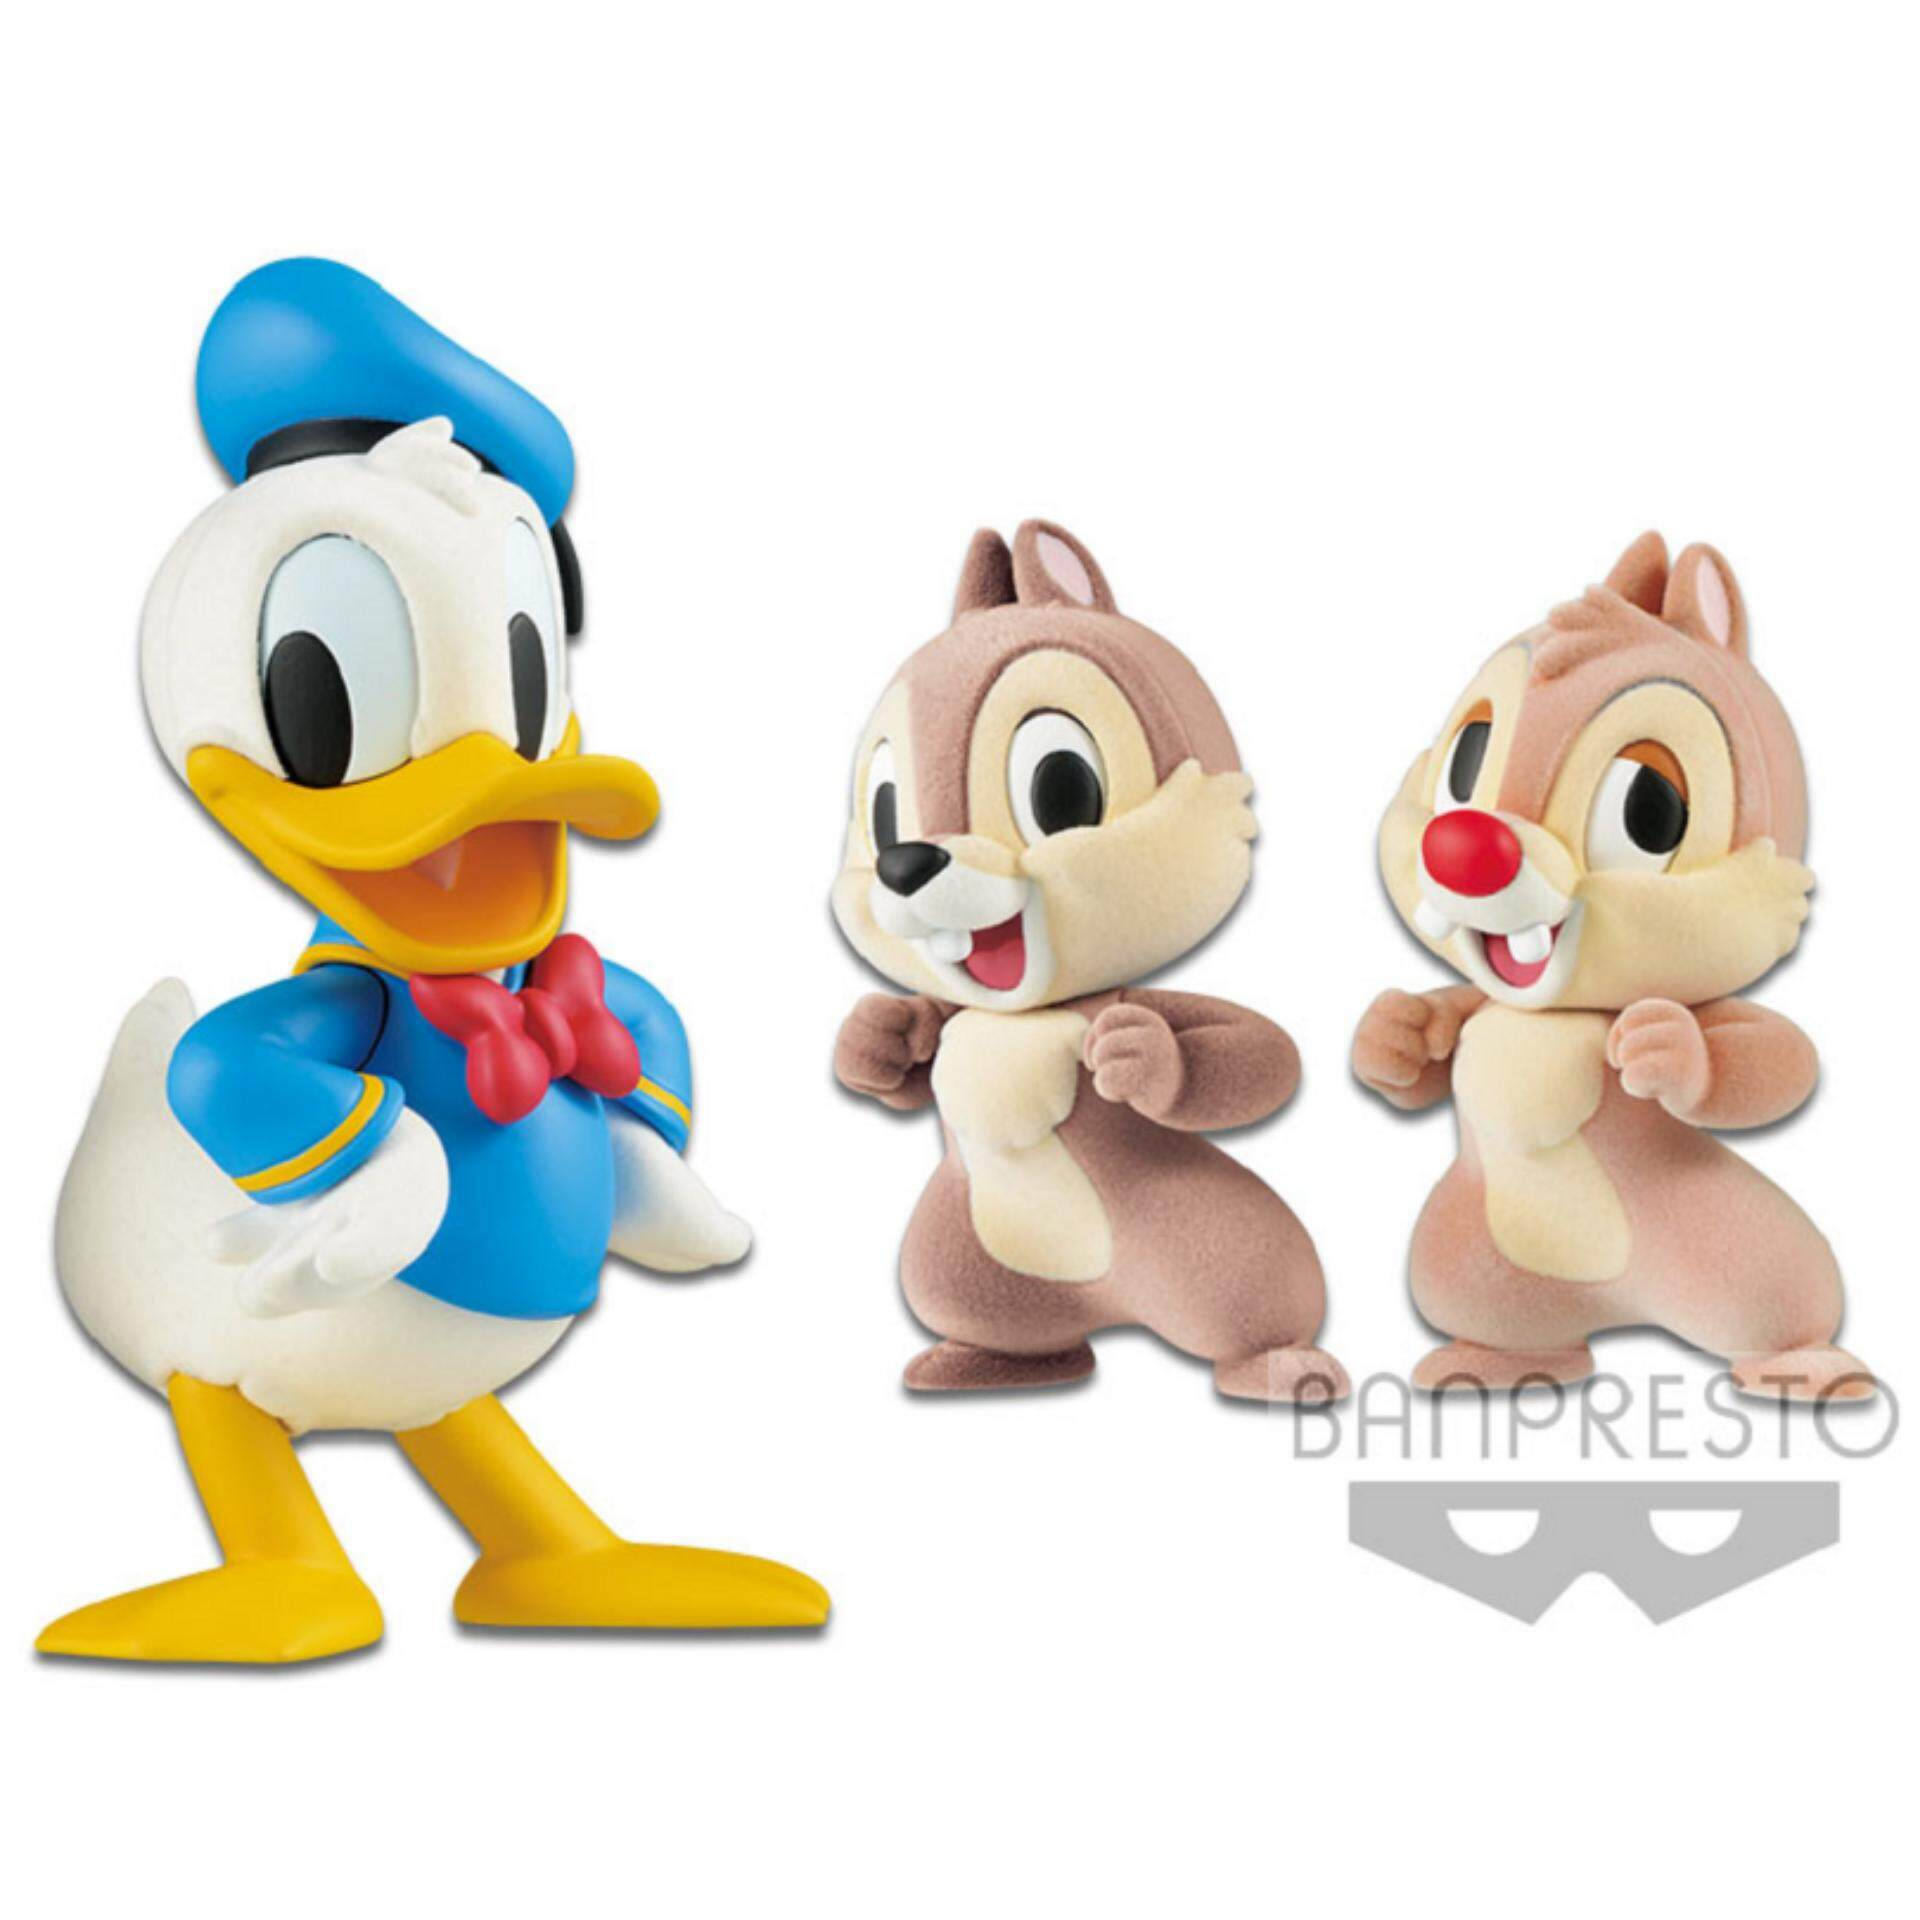 Banpresto Fluffy & Puffy Disney Figure - Donald & Chip And Dale Toys for boys